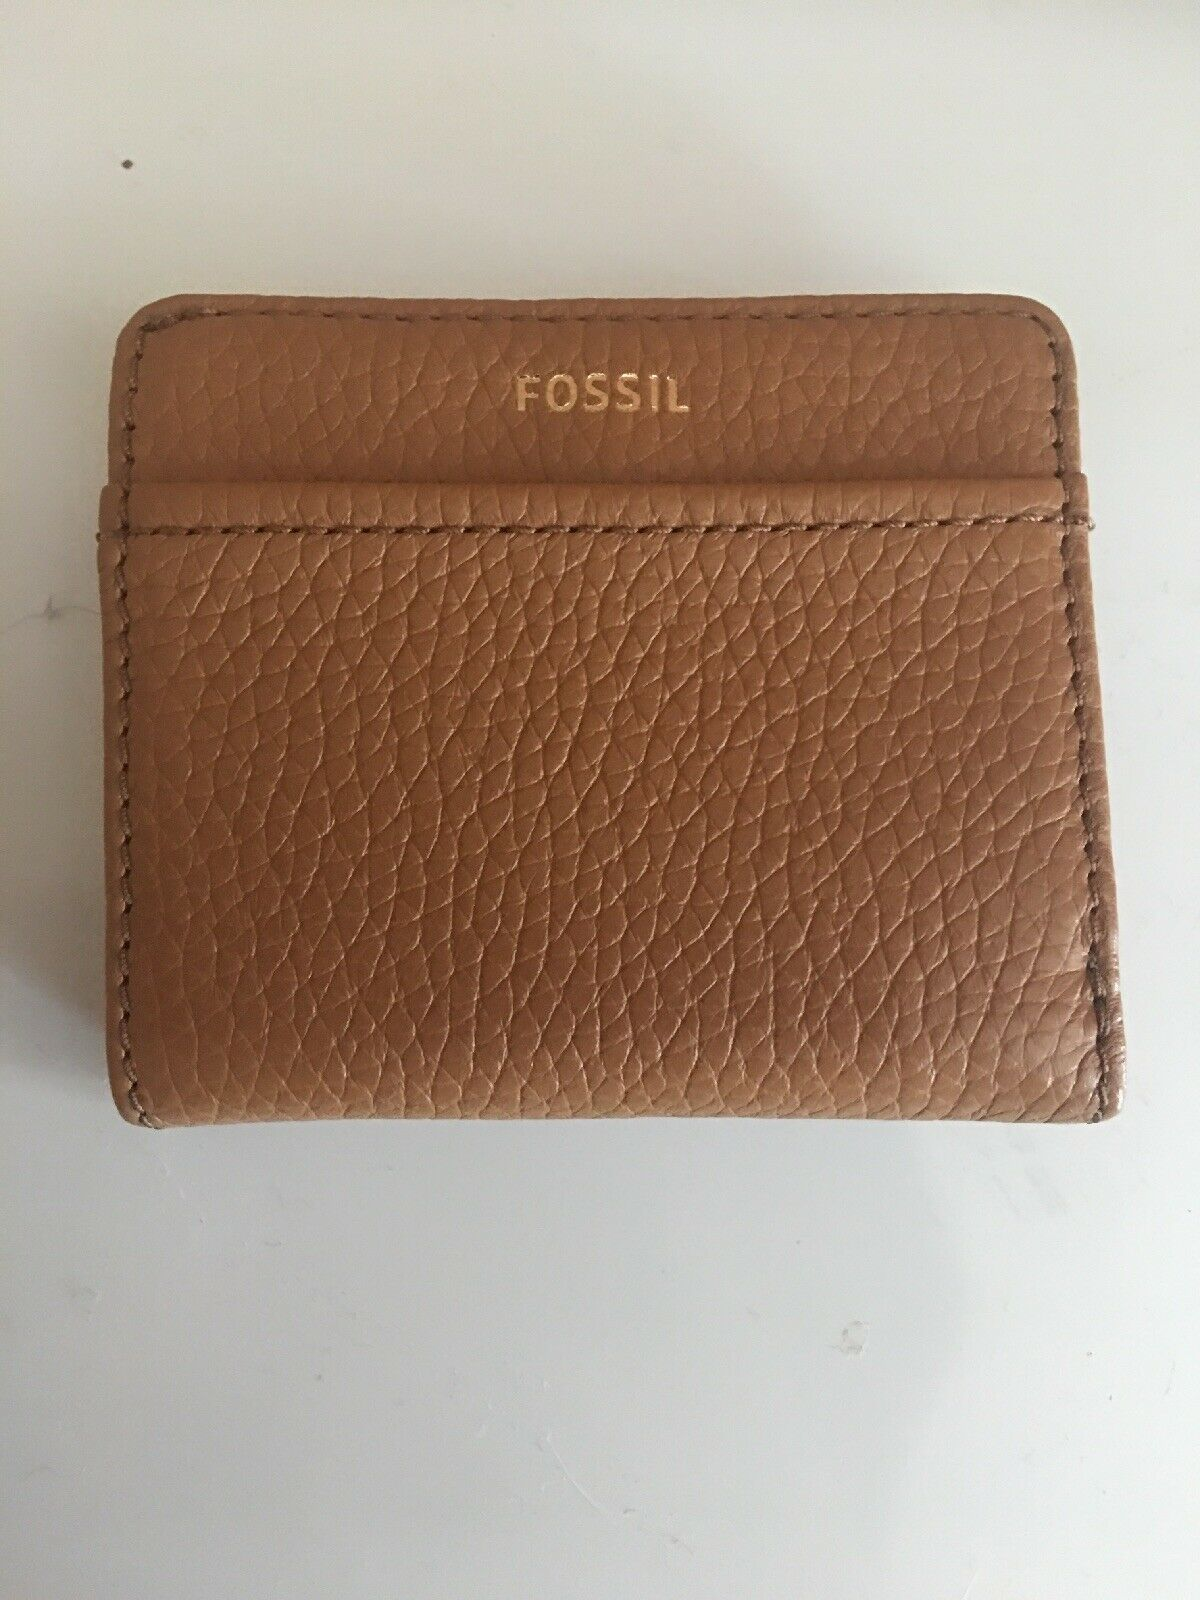 FOSSIL TESSA Leather Bifold Wallet Women's Medium Cognac New NWT